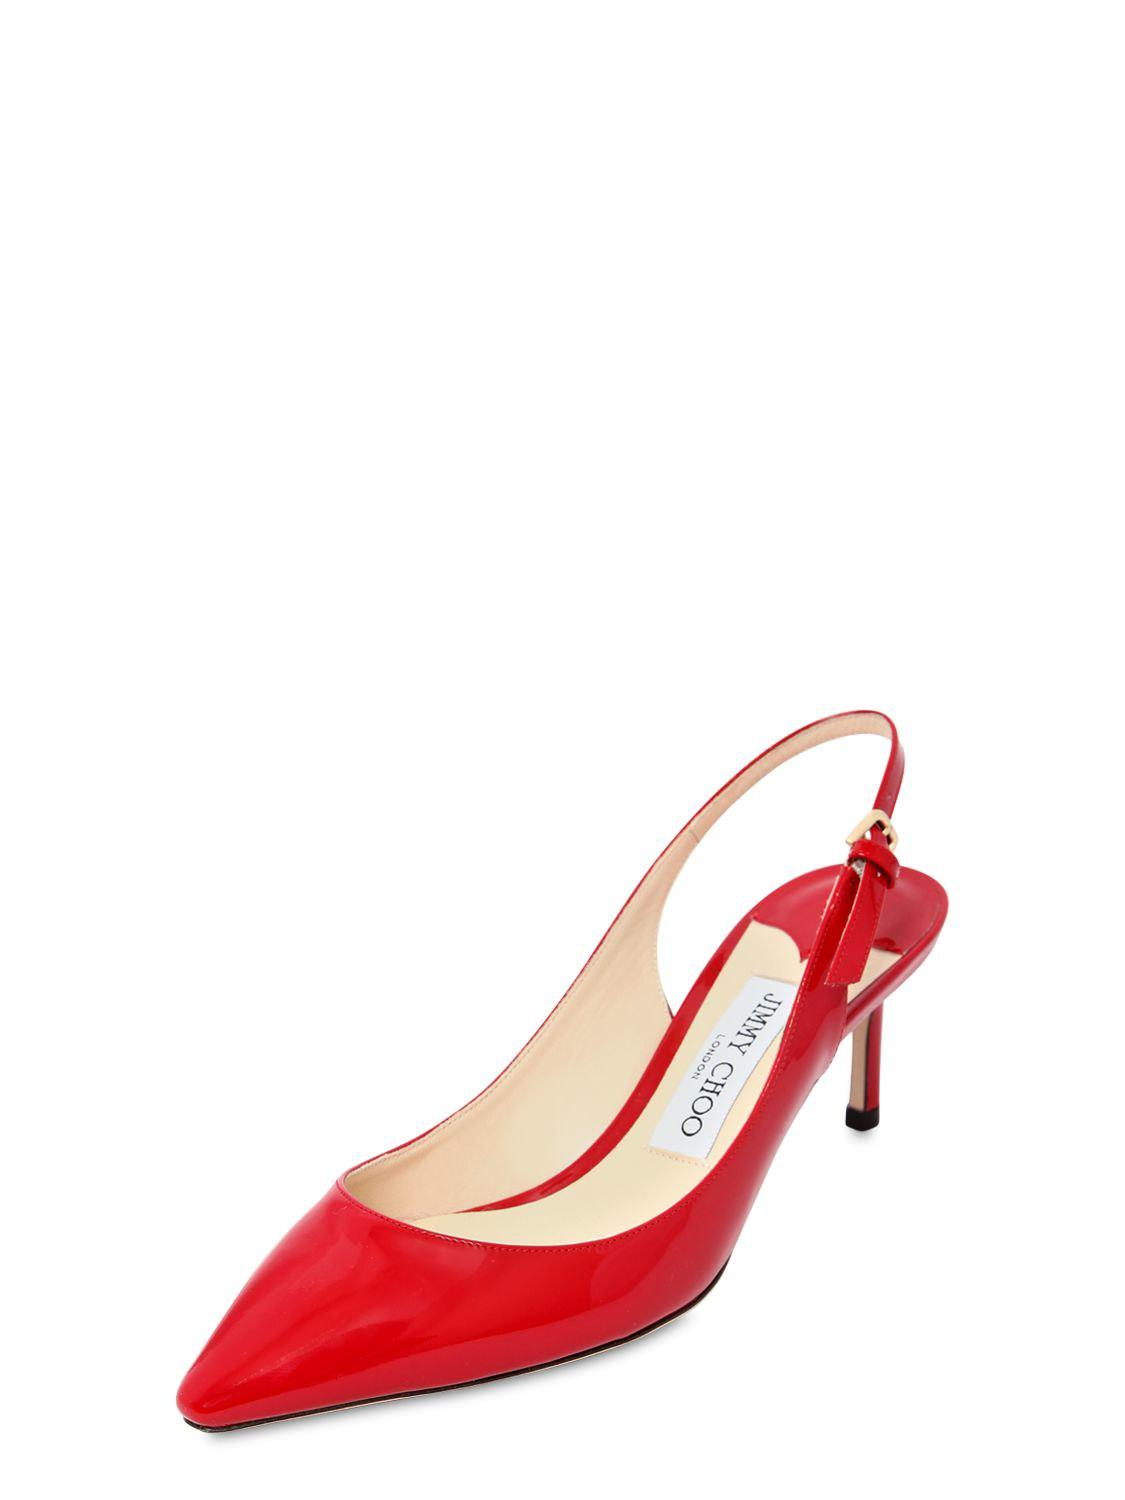 398bf1d12d5 Jimmy Choo - Red 60mm Erin Patent Leather Slingback Pumps - Lyst. View  fullscreen